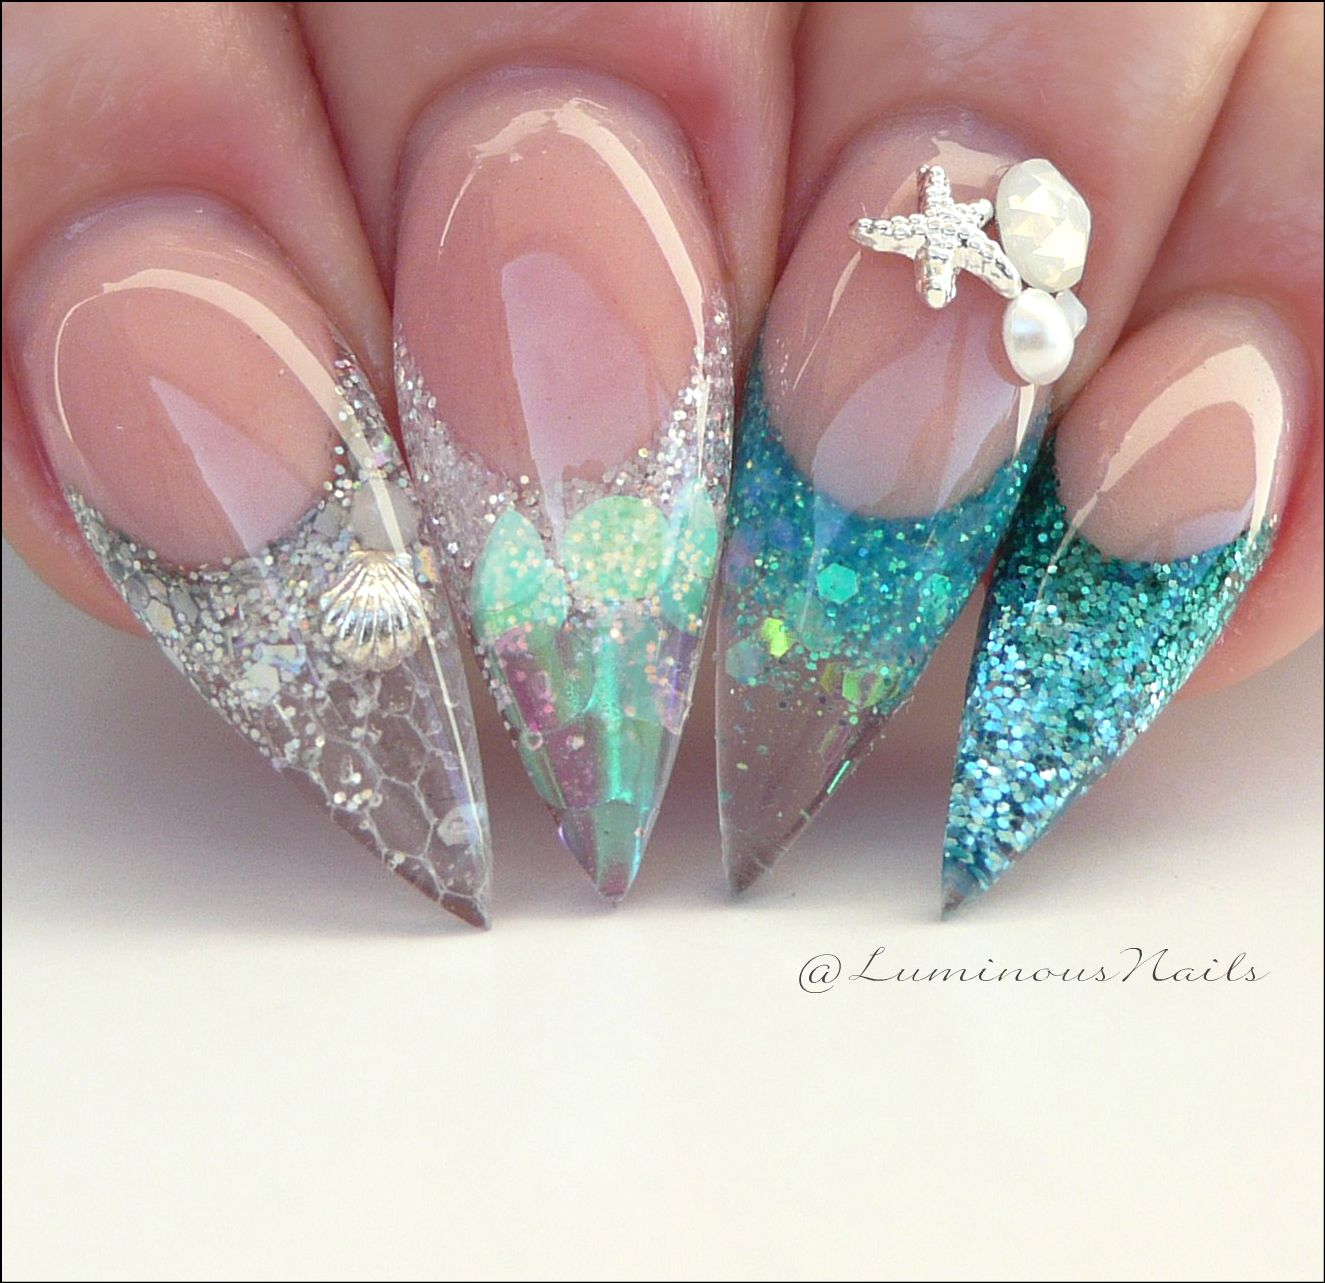 ocean nails with bit of glitter